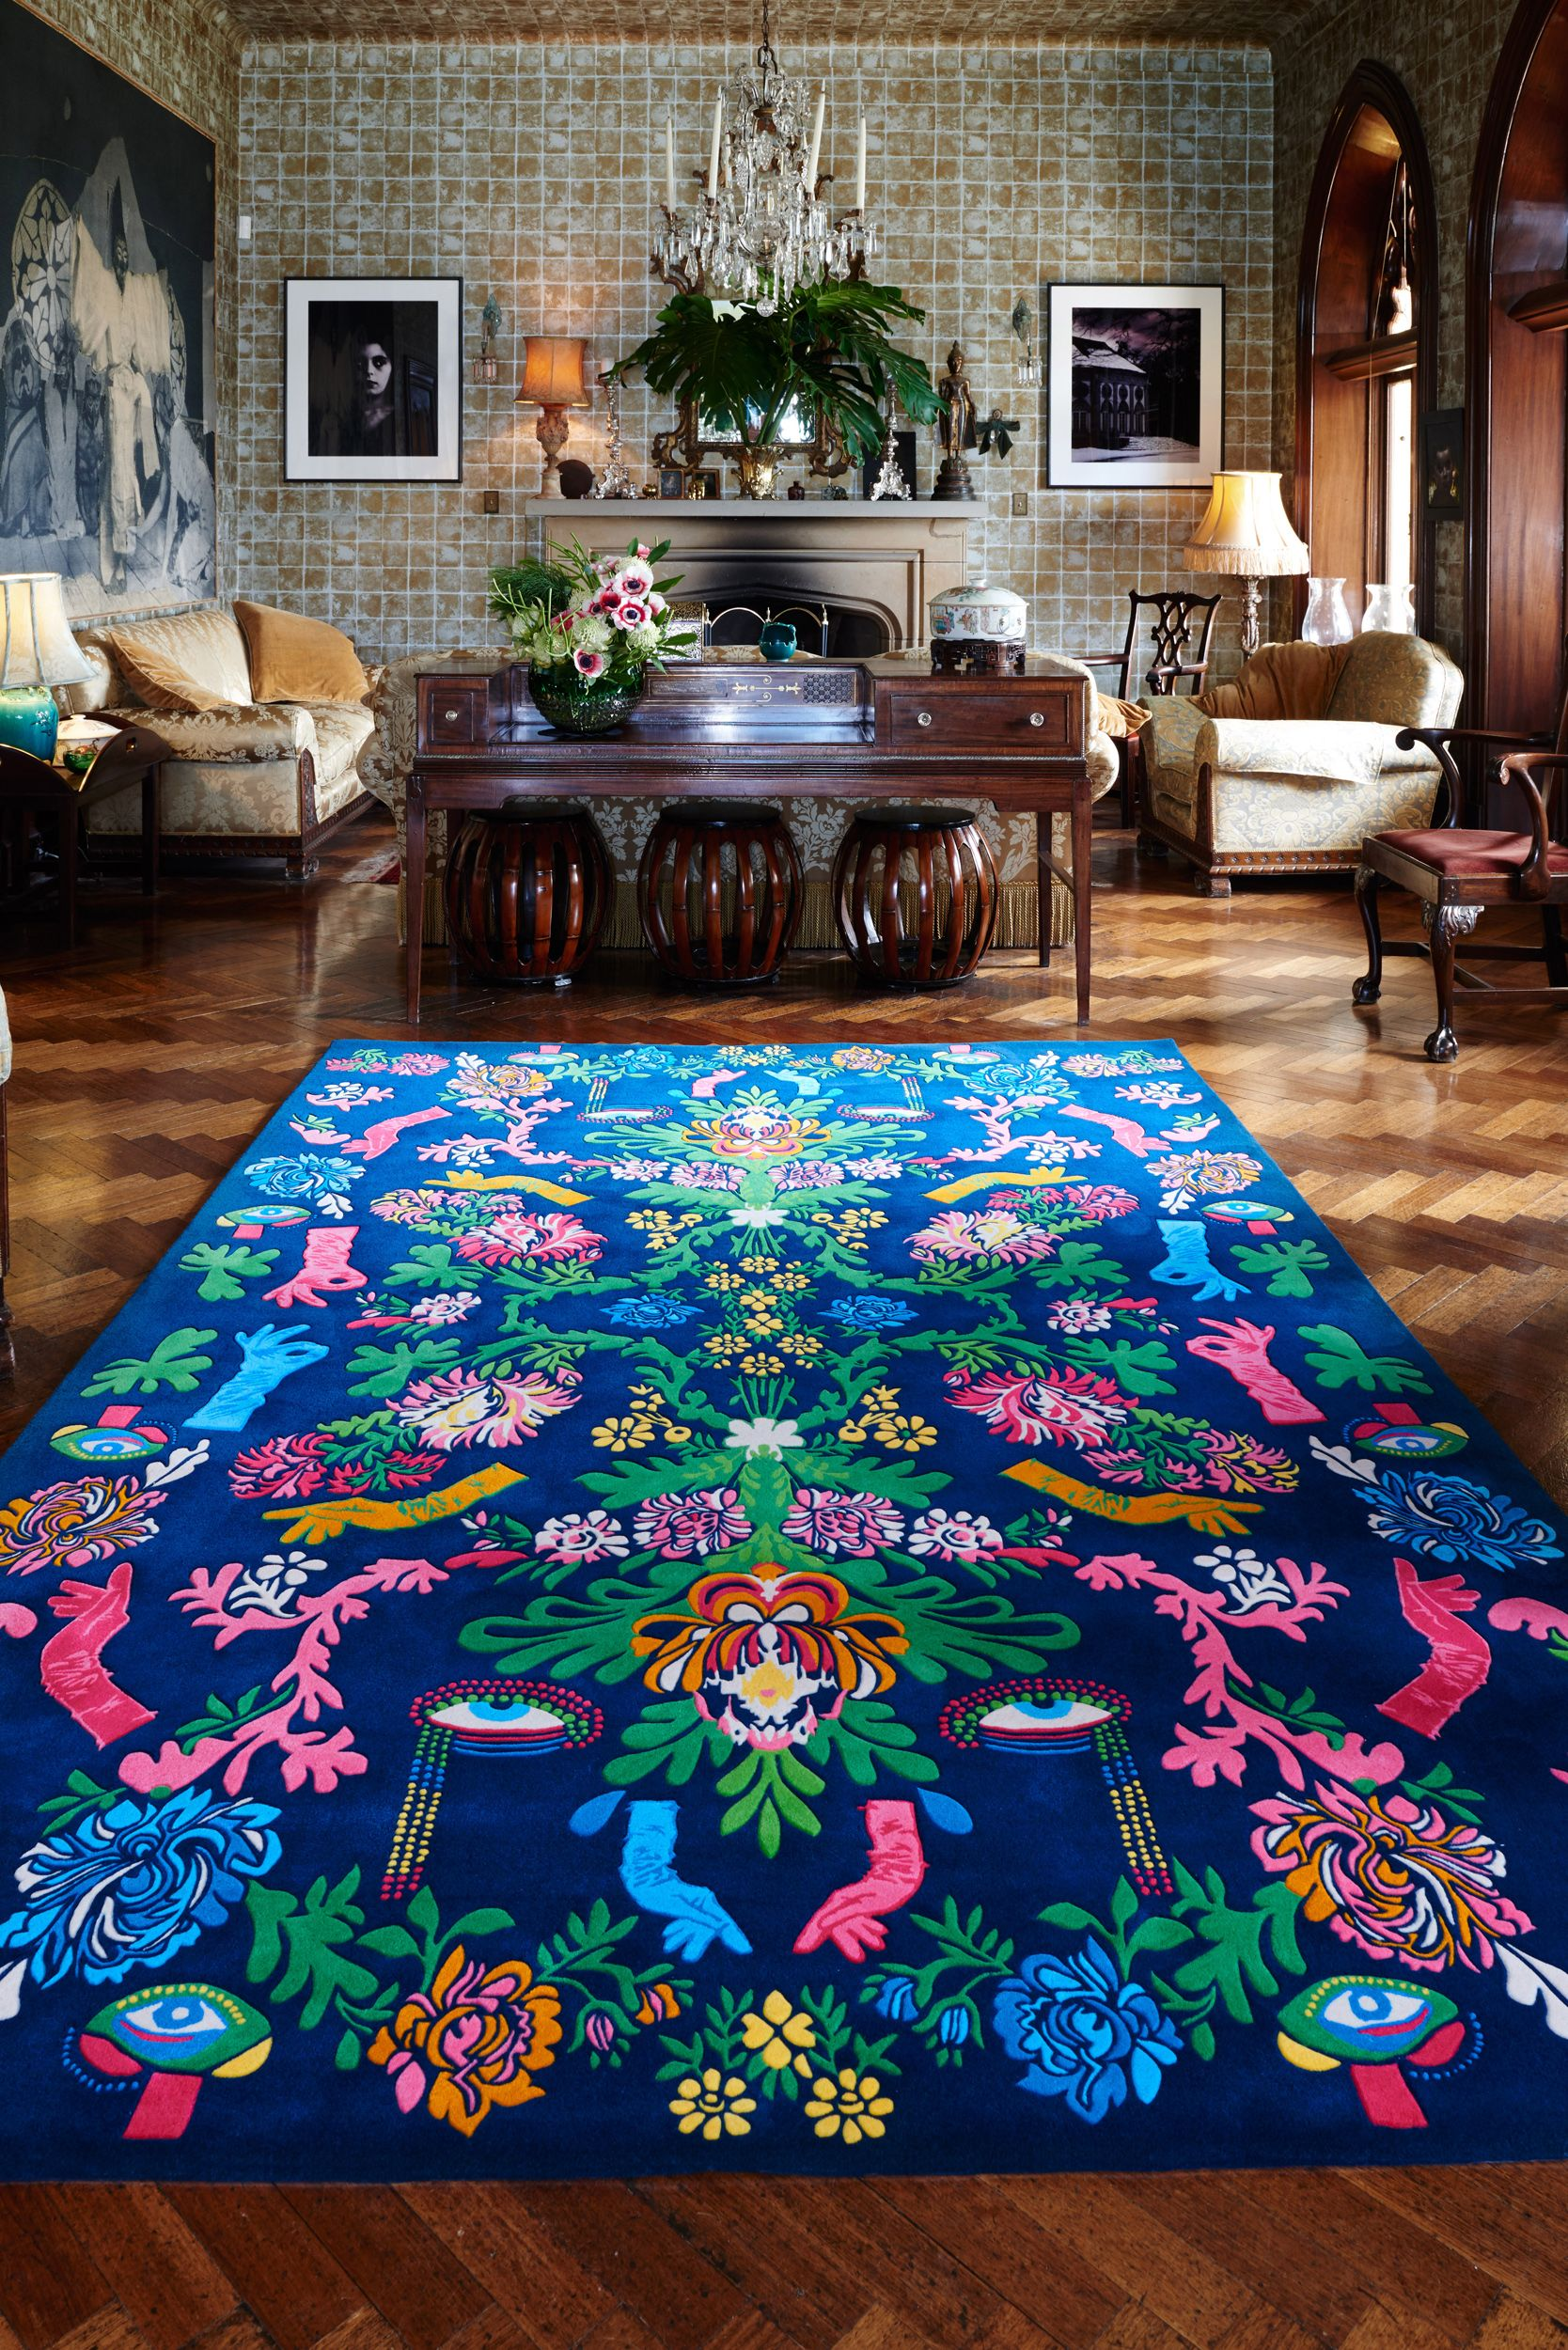 Powder Room Designer Rugs New Romance Was Born Collection Is Fantastical Visionary And Not For The Faint At Heart Fash Boho Eclectic Decor Rugs Rug Design